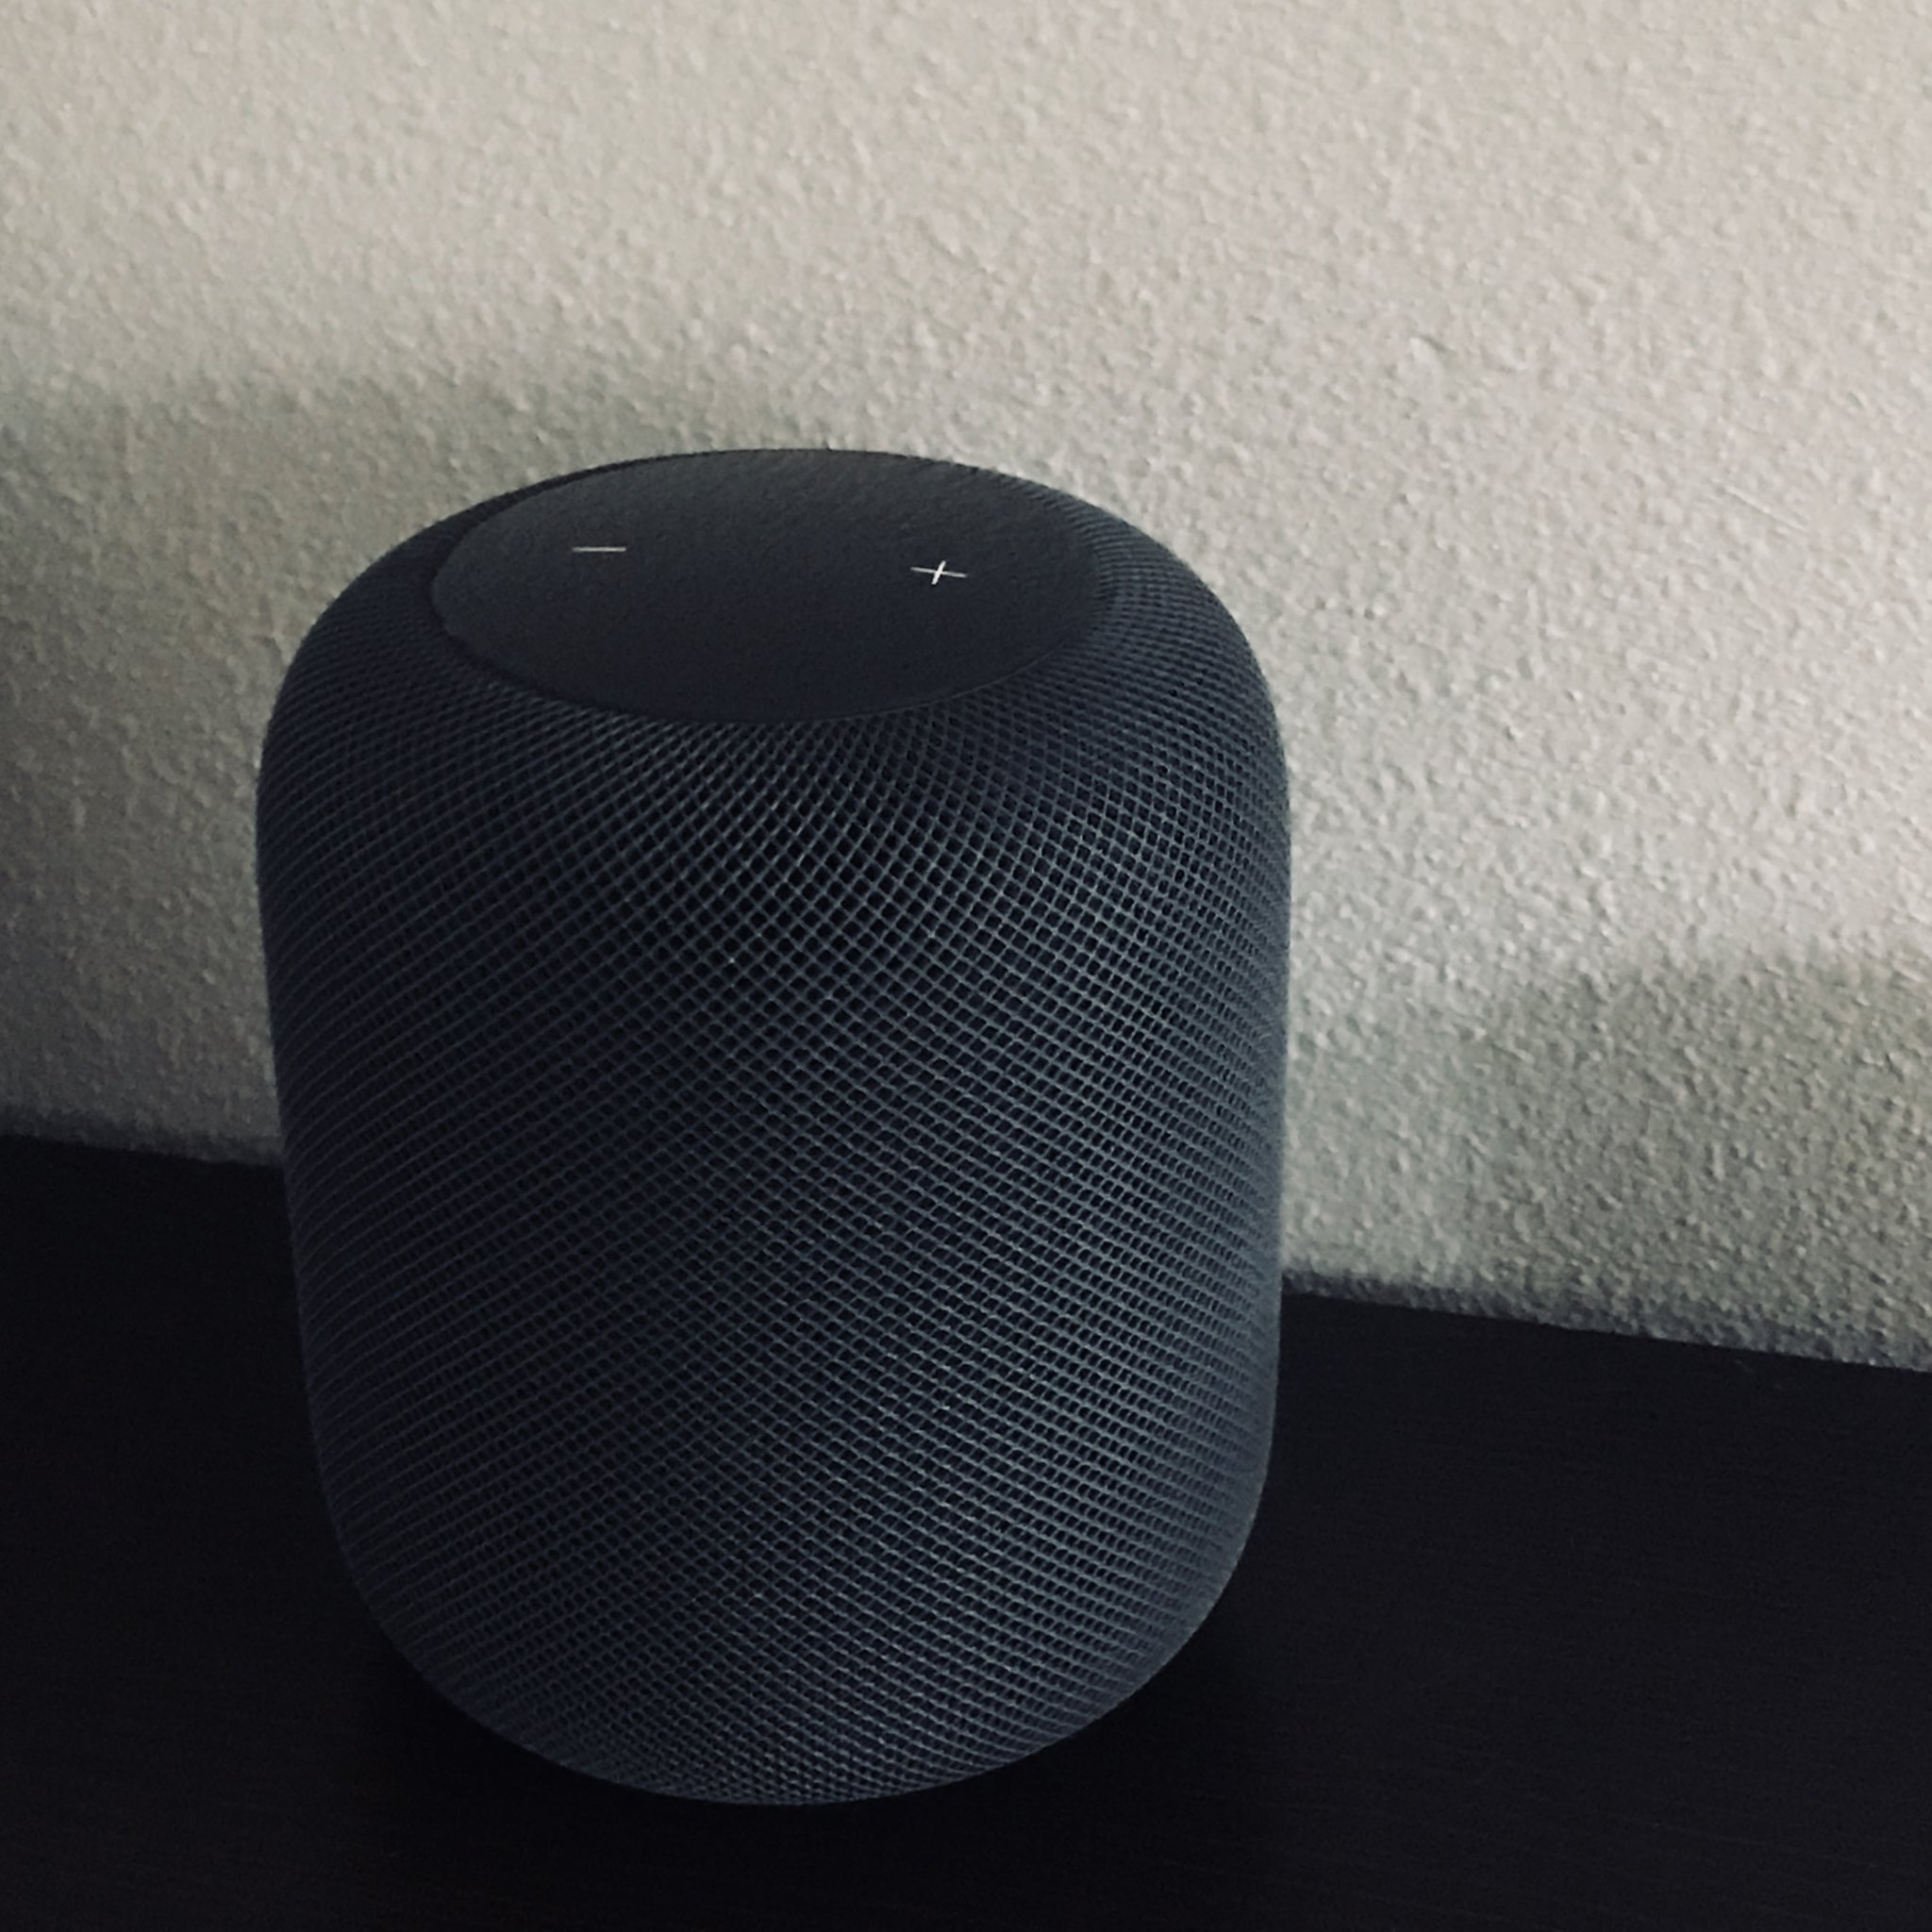 The Apple HomePod sounds incredible.…